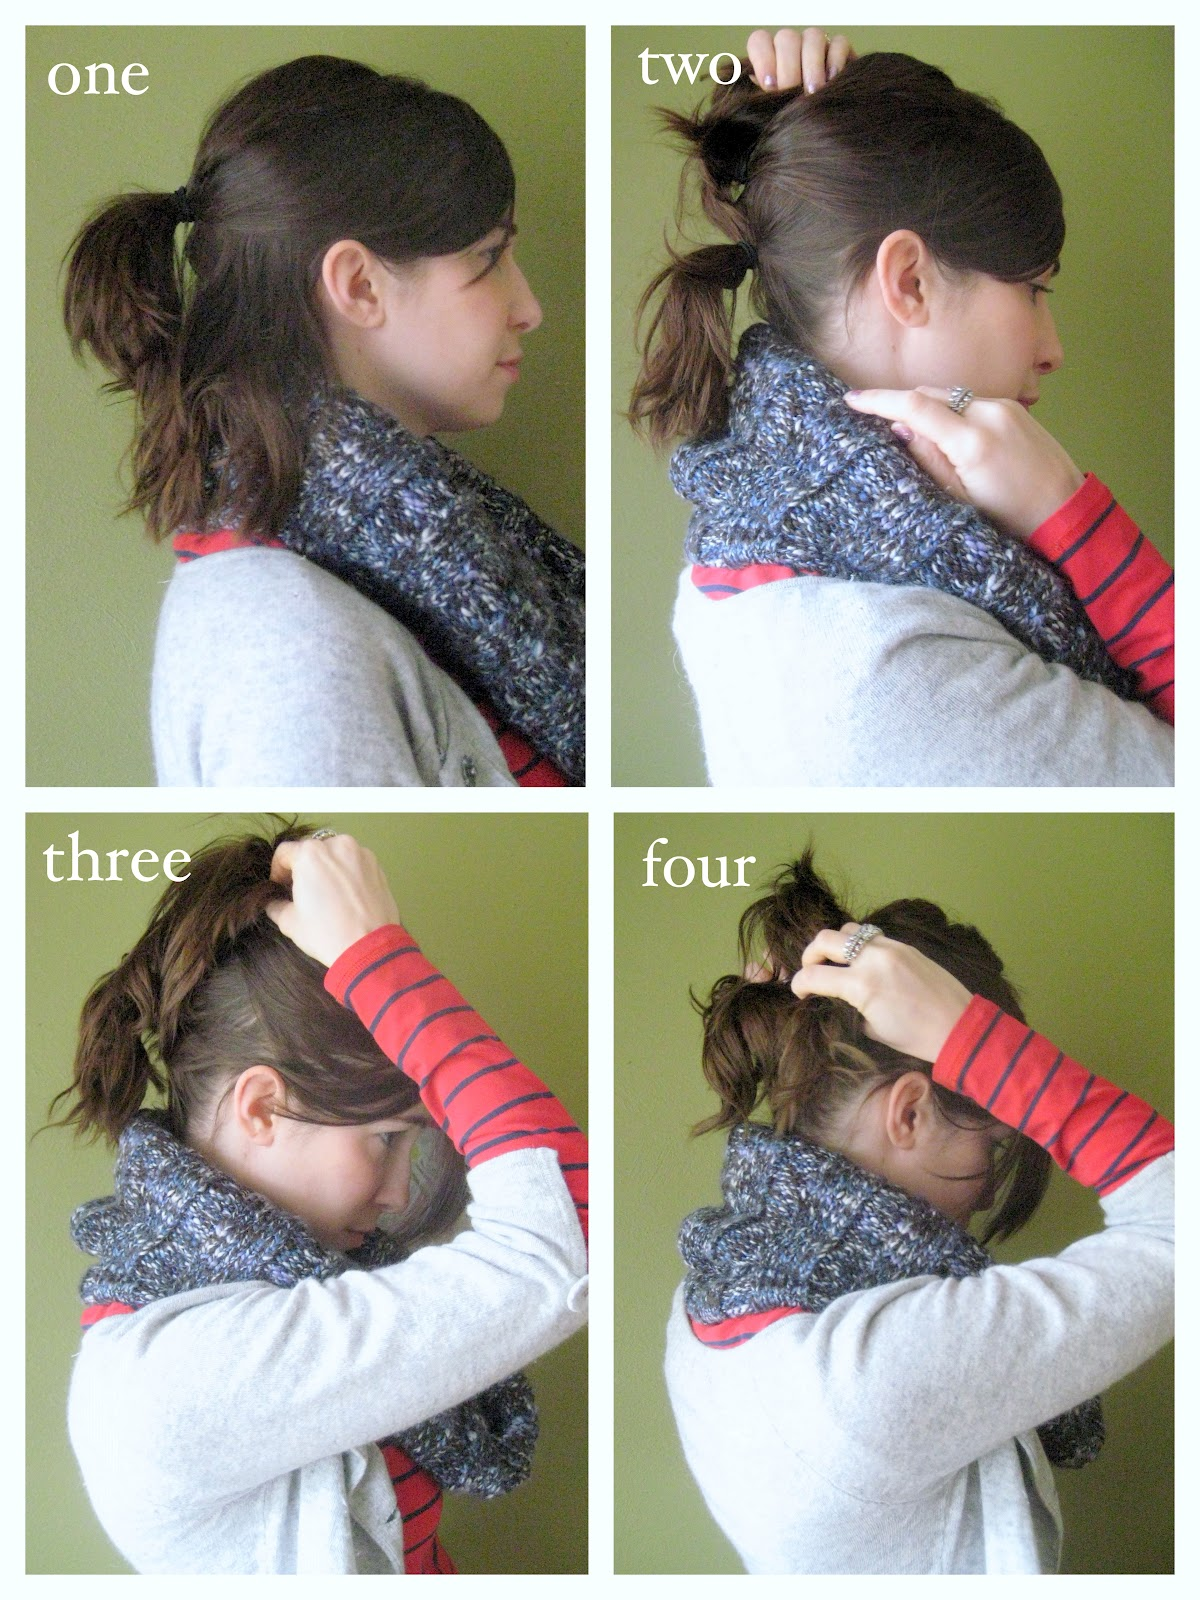 Hairstyles For Short Hair In Ponytail : miskabelle vintage: How To: Style A Long Pony Tail from Short Hair